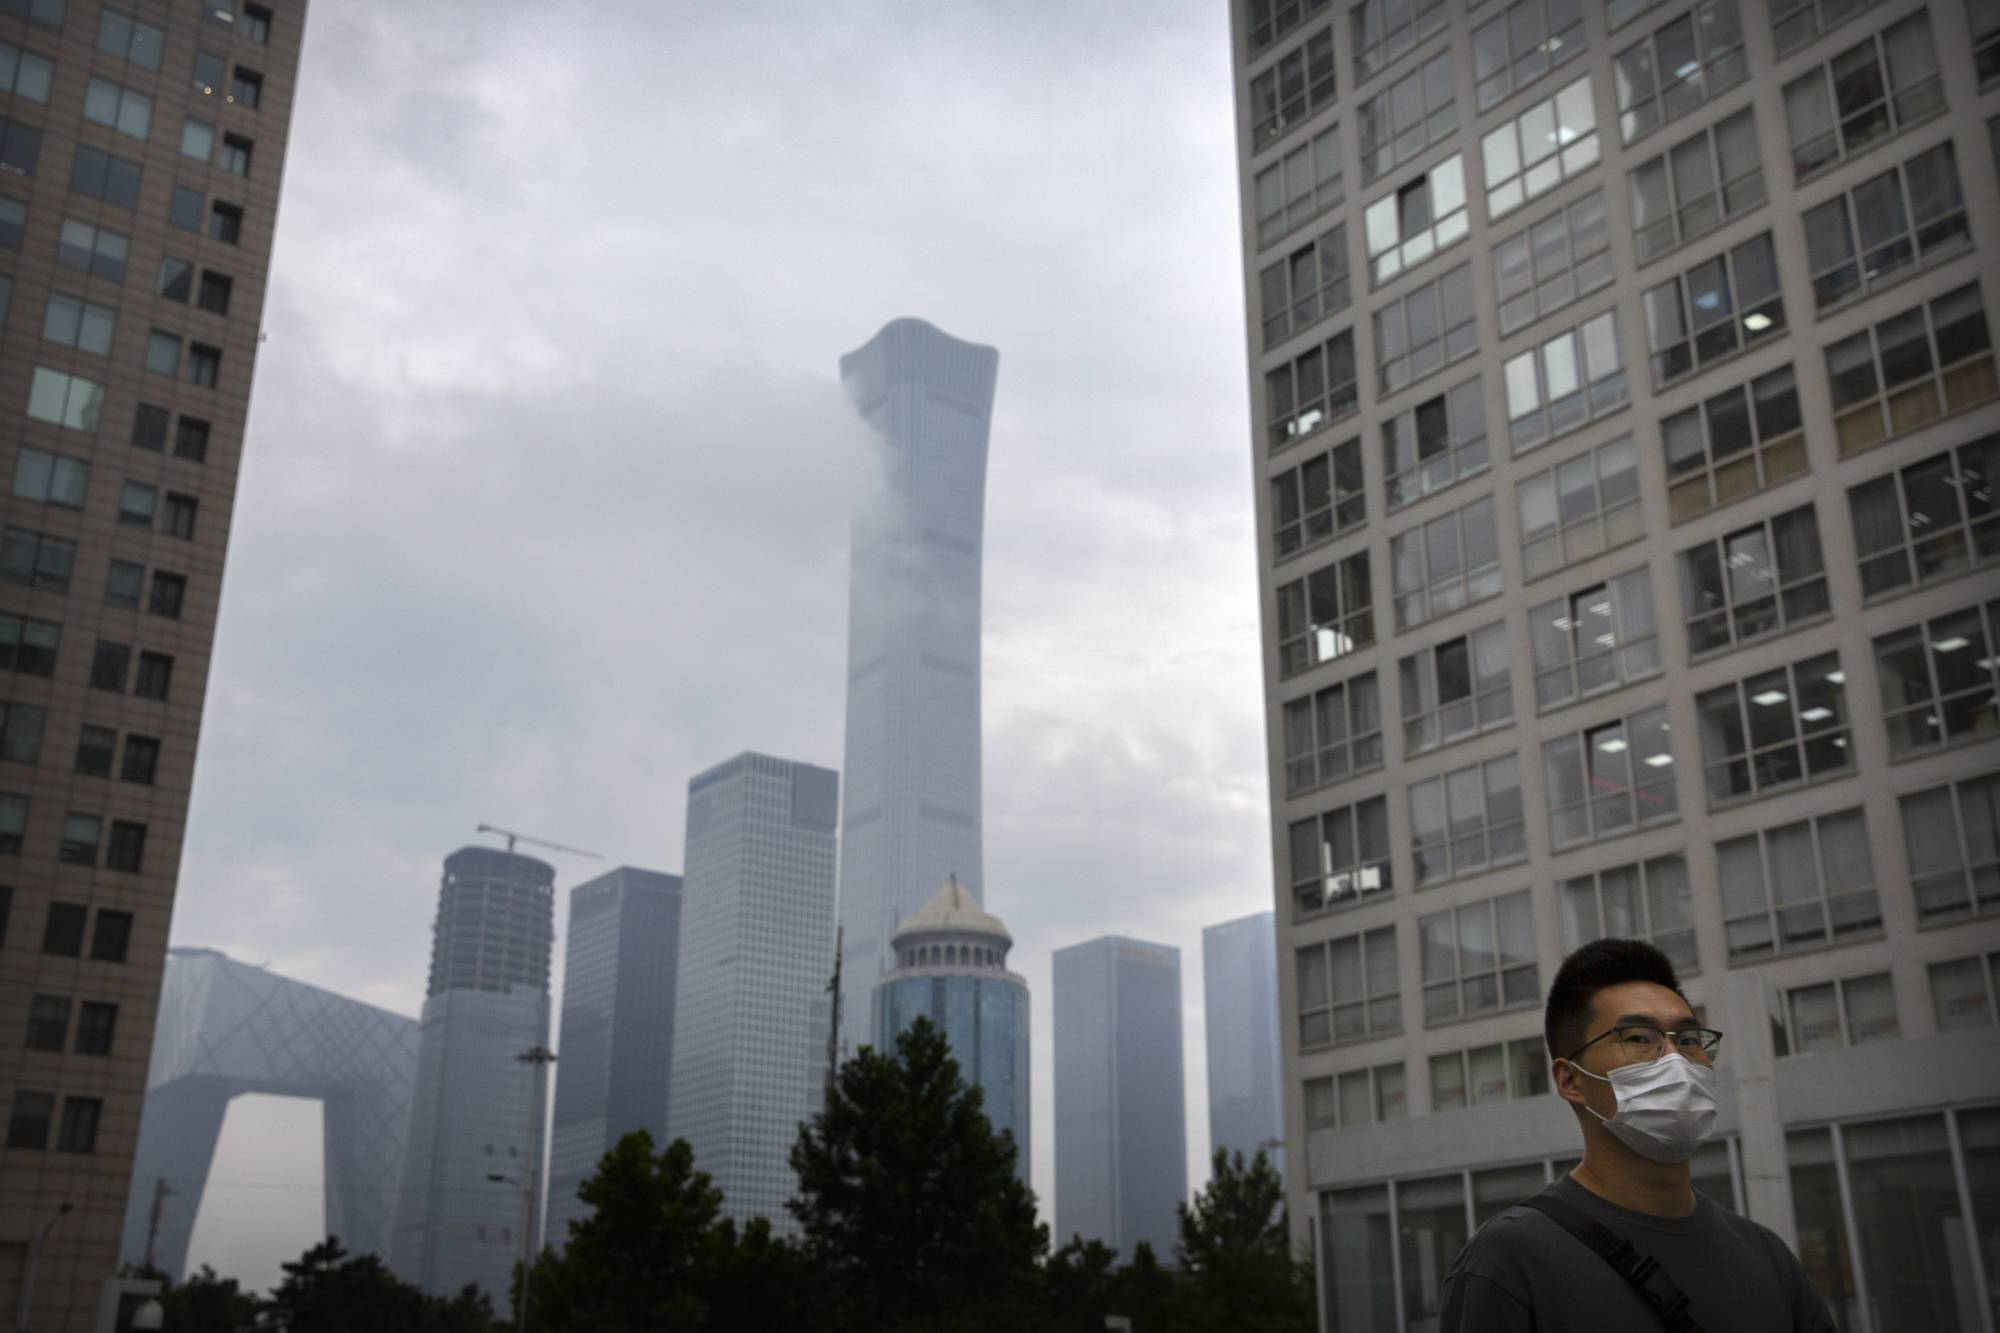 The central business district in Beijing. According to an estimate, Shanghai saw 27,000 deaths from Jan. 1 due to smog, more than the 22,000 in Beijing. | AP